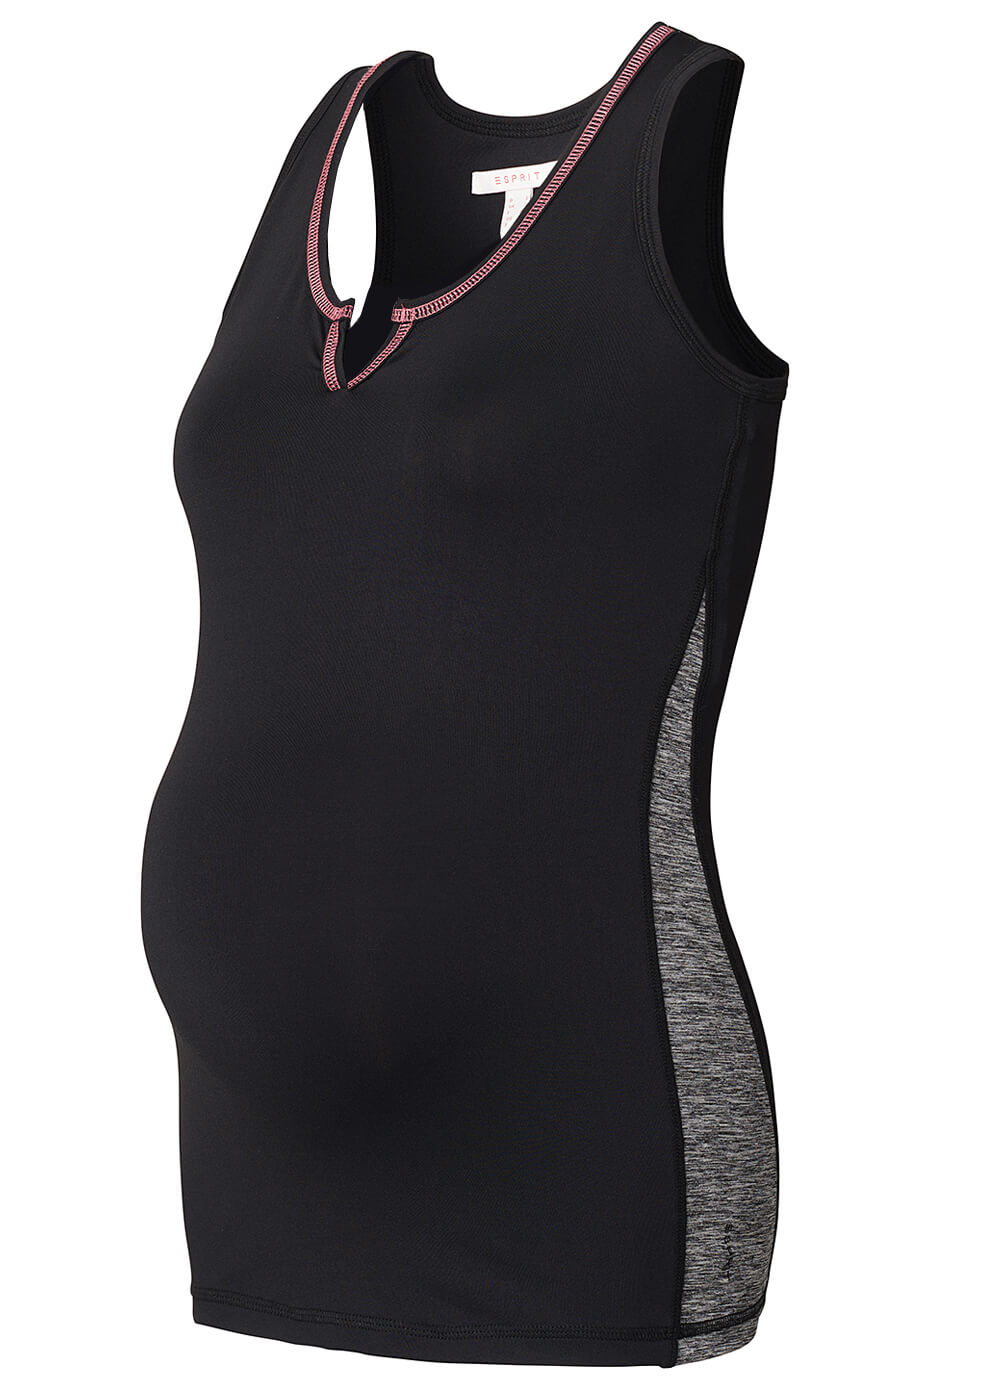 Maternity Active Sports Tank Top in Black by Esprit